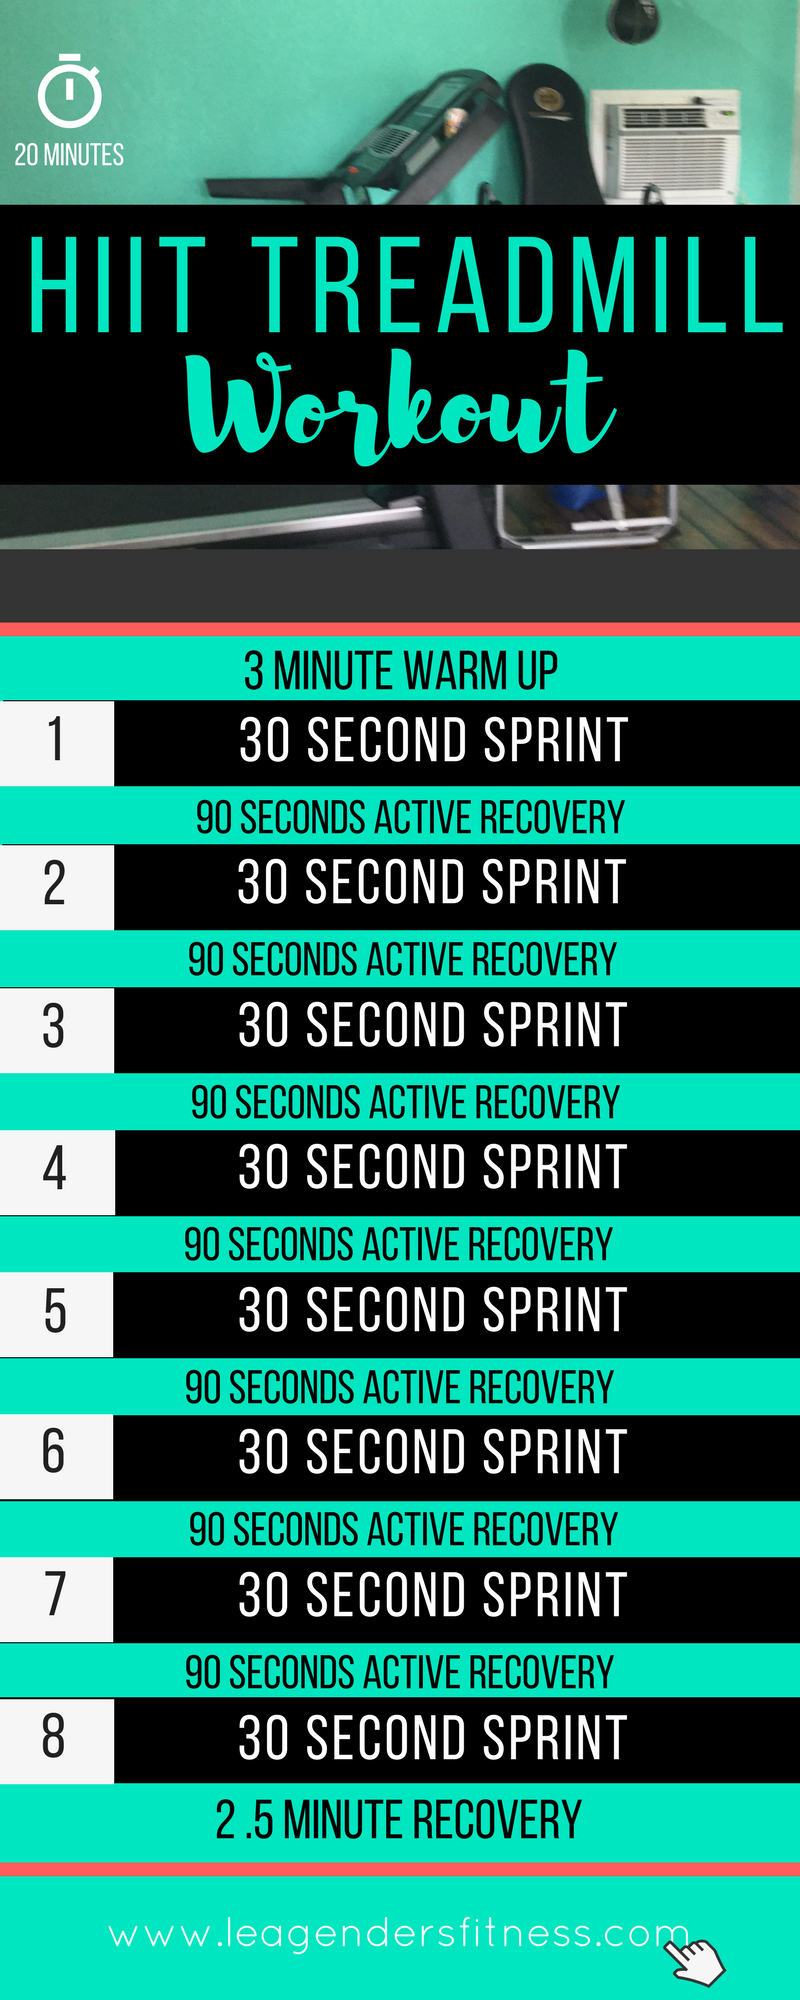 Save to your favorite Pinterest workout board for later!